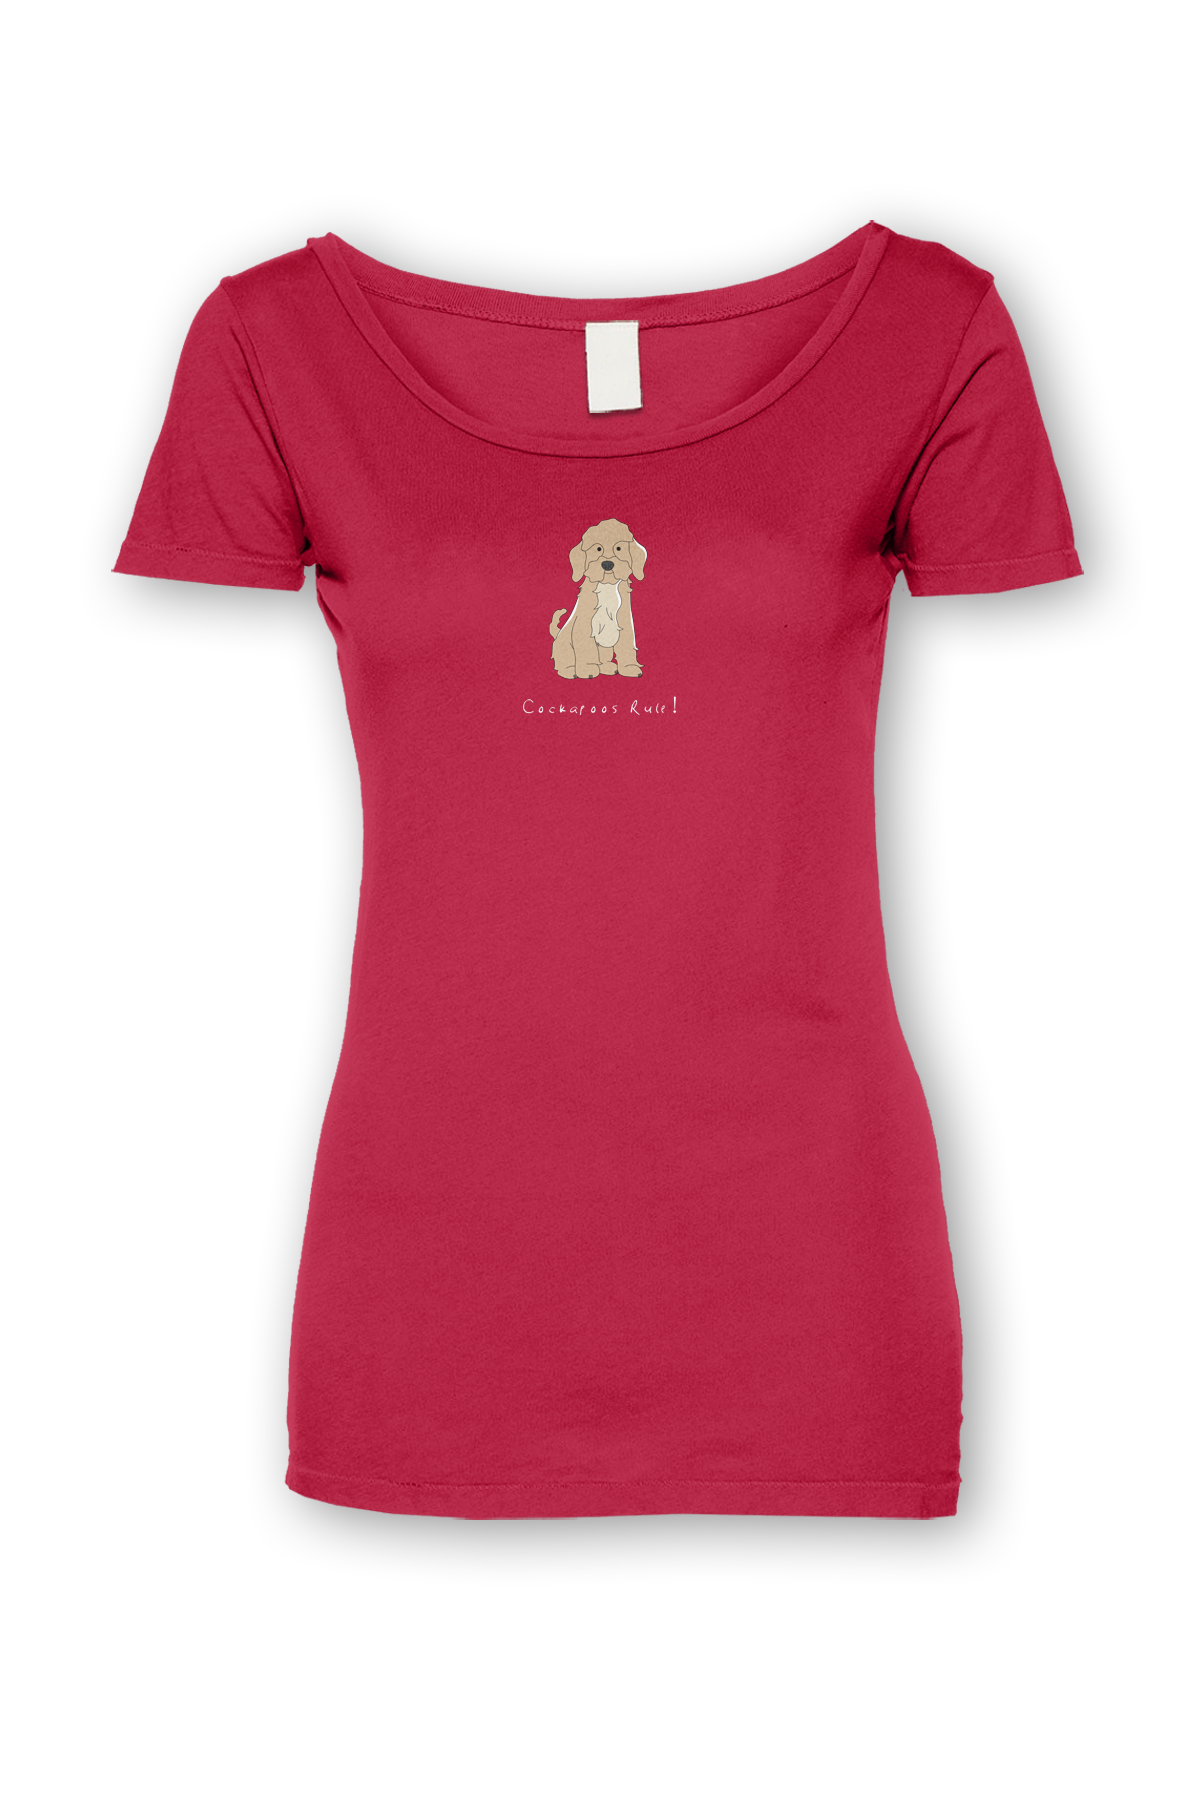 Ladies Sheer Scoop Neck T-Shirt - Cockerpoos Rule! Red